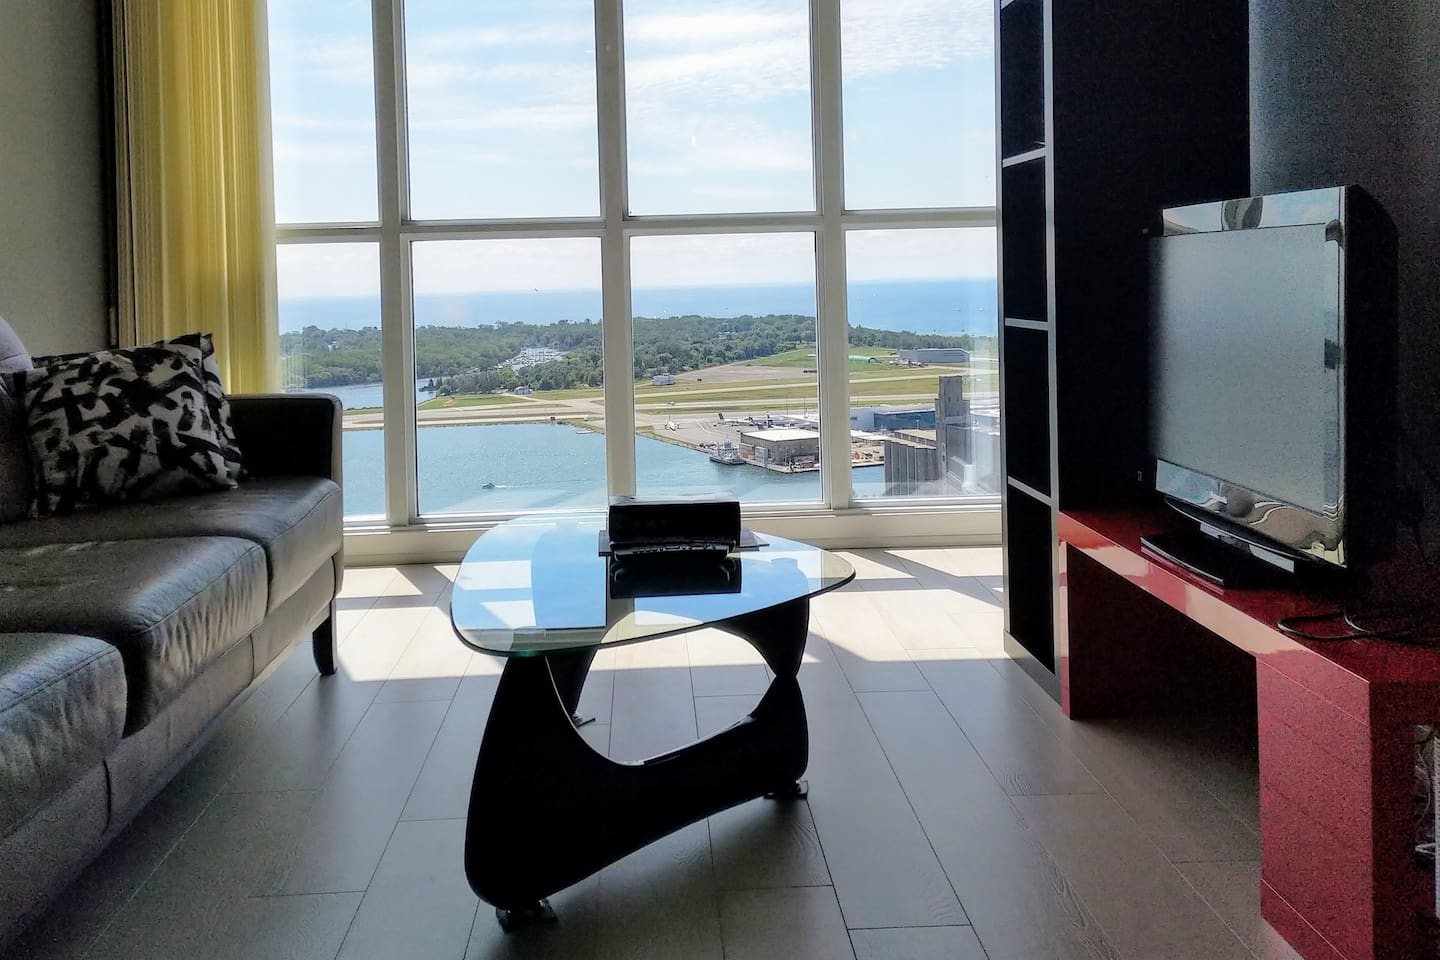 Beautiful lake view at 39 Floor. Walking distance to Rogers centre, CN tower , Aquarium island airport..